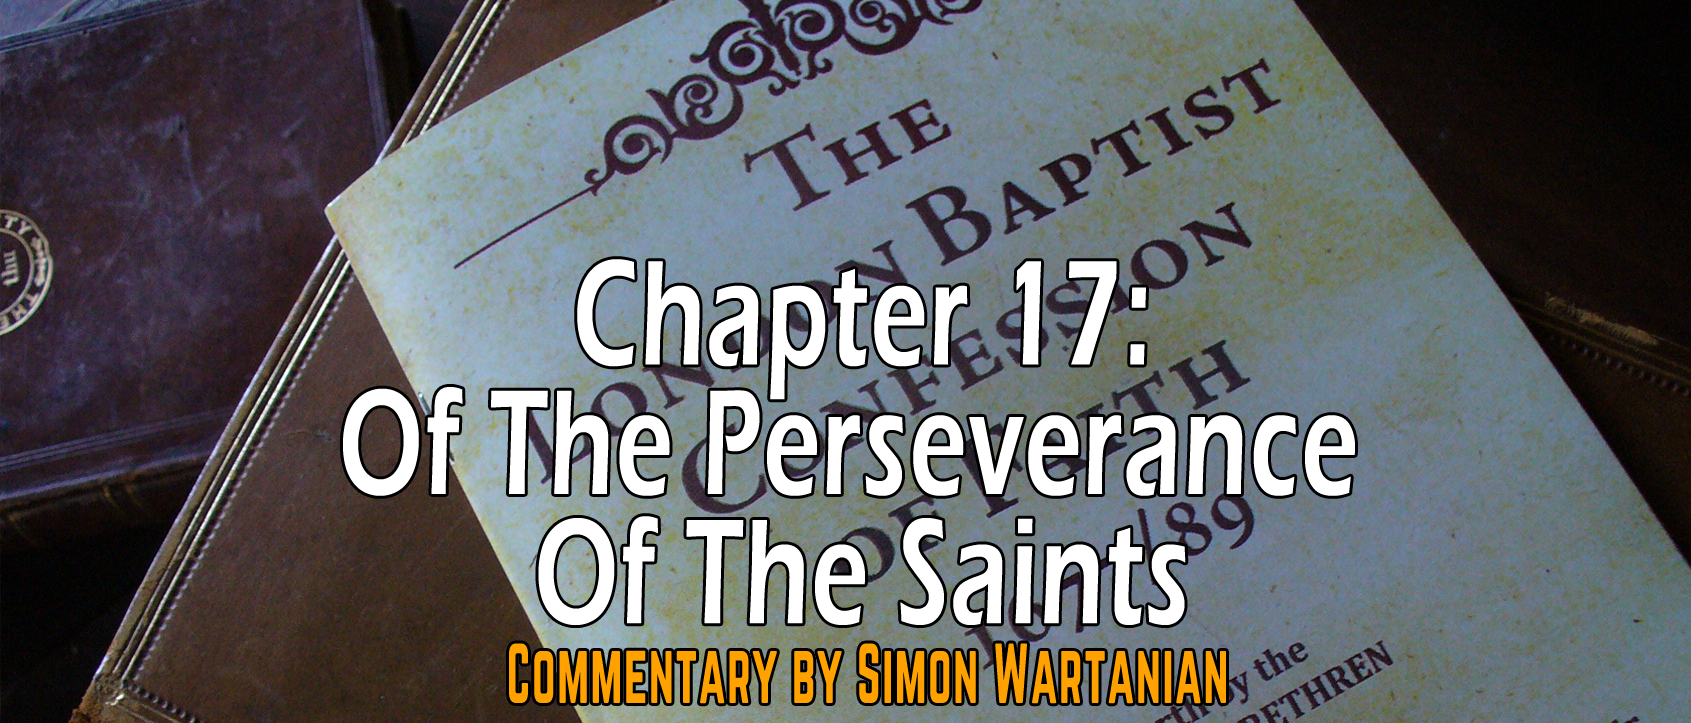 1689 Baptist Confession Chapter 17: Of The Perseverance of the Saints - Commentary